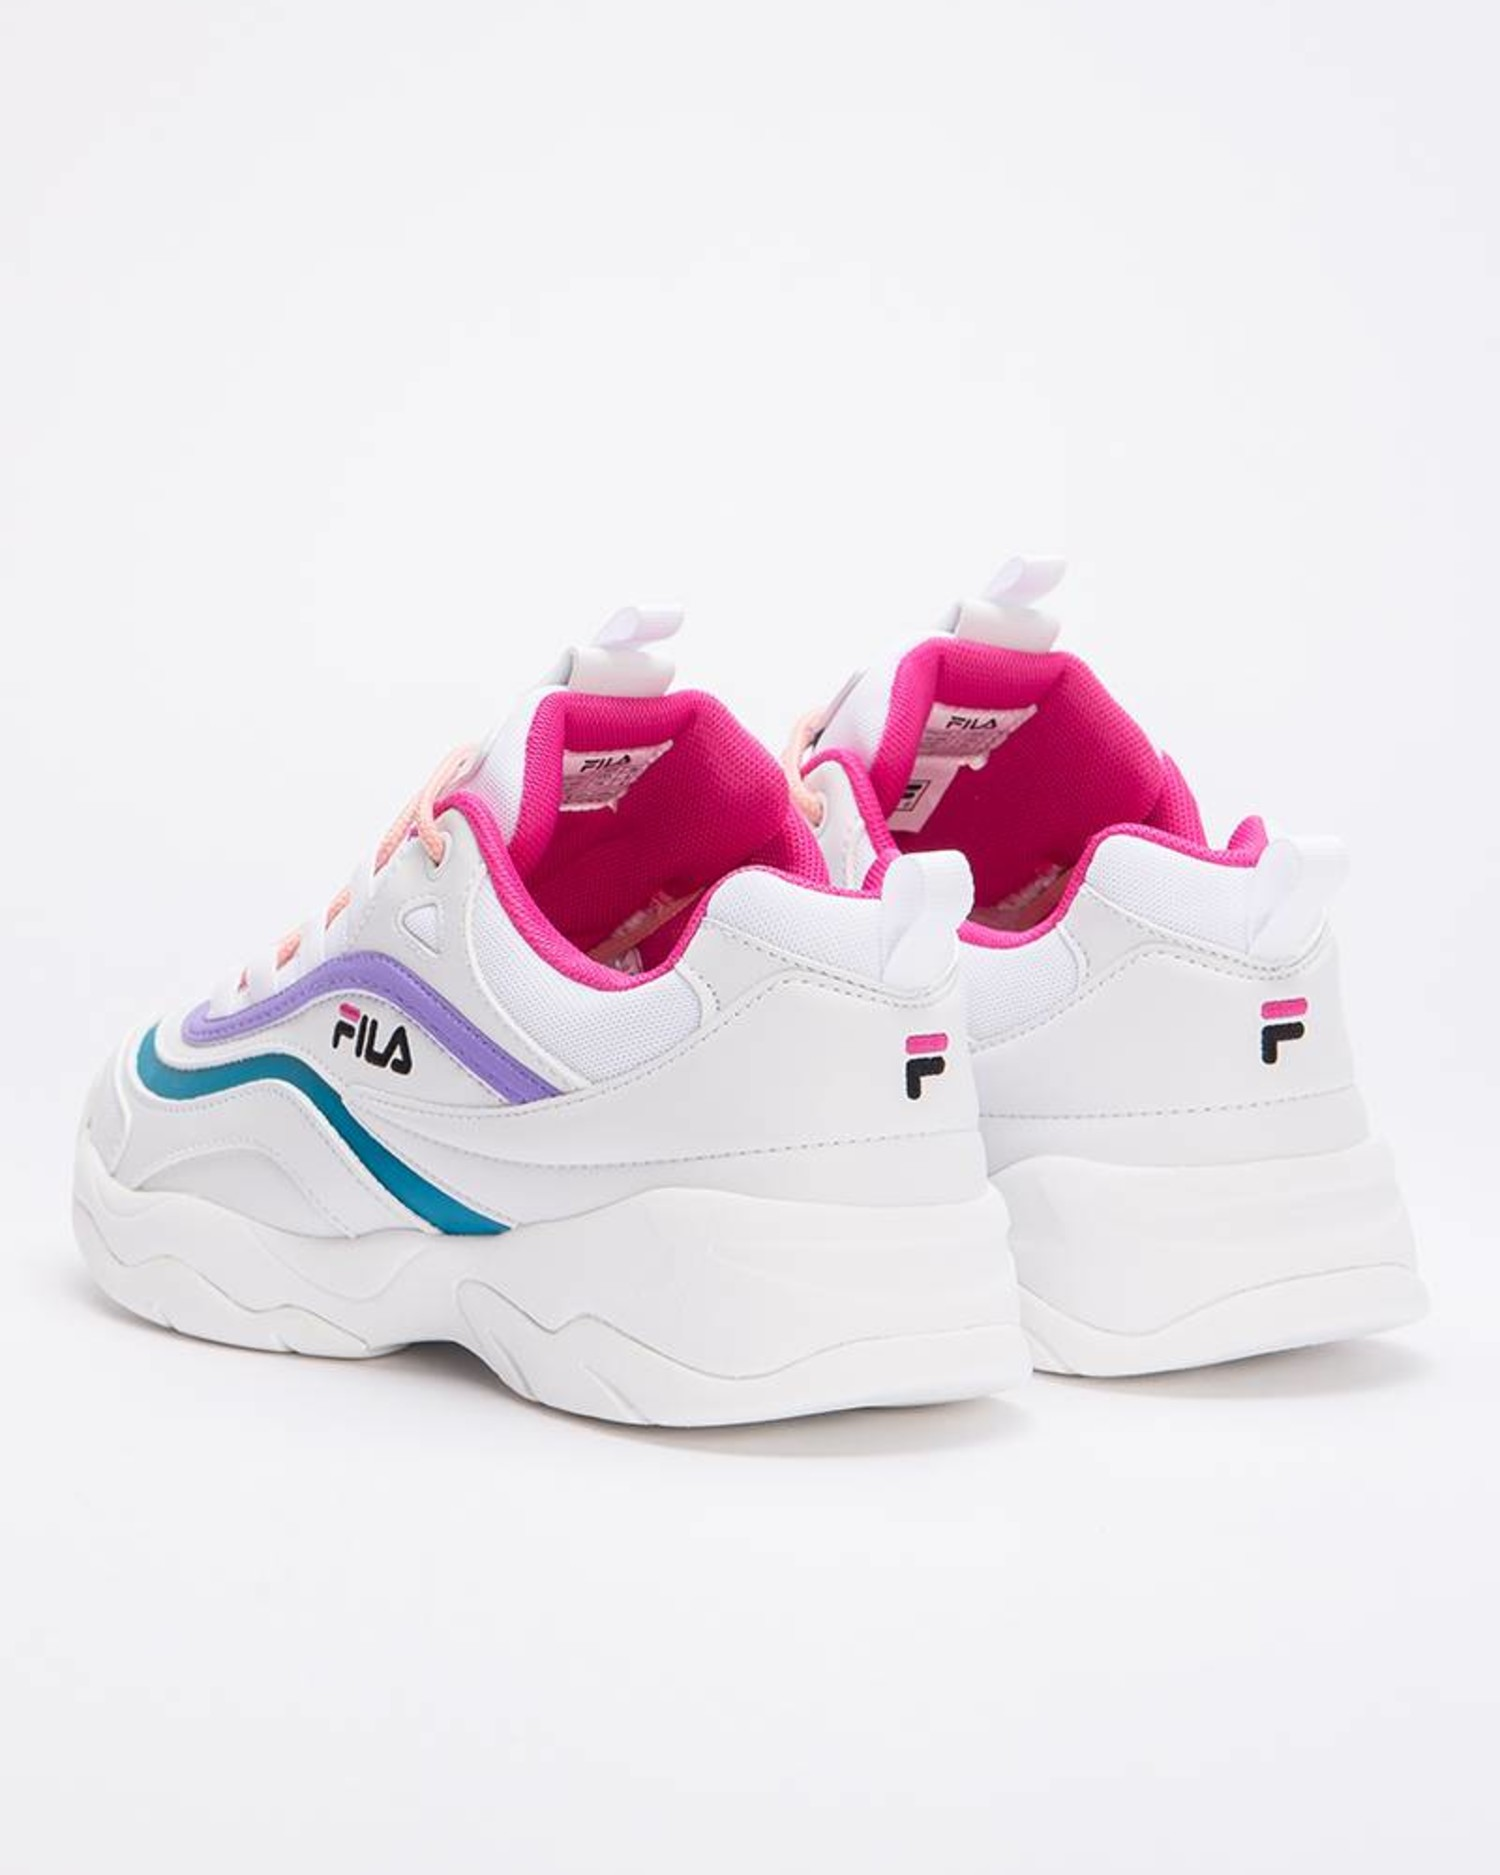 Fila Ray Low White/Very Berry